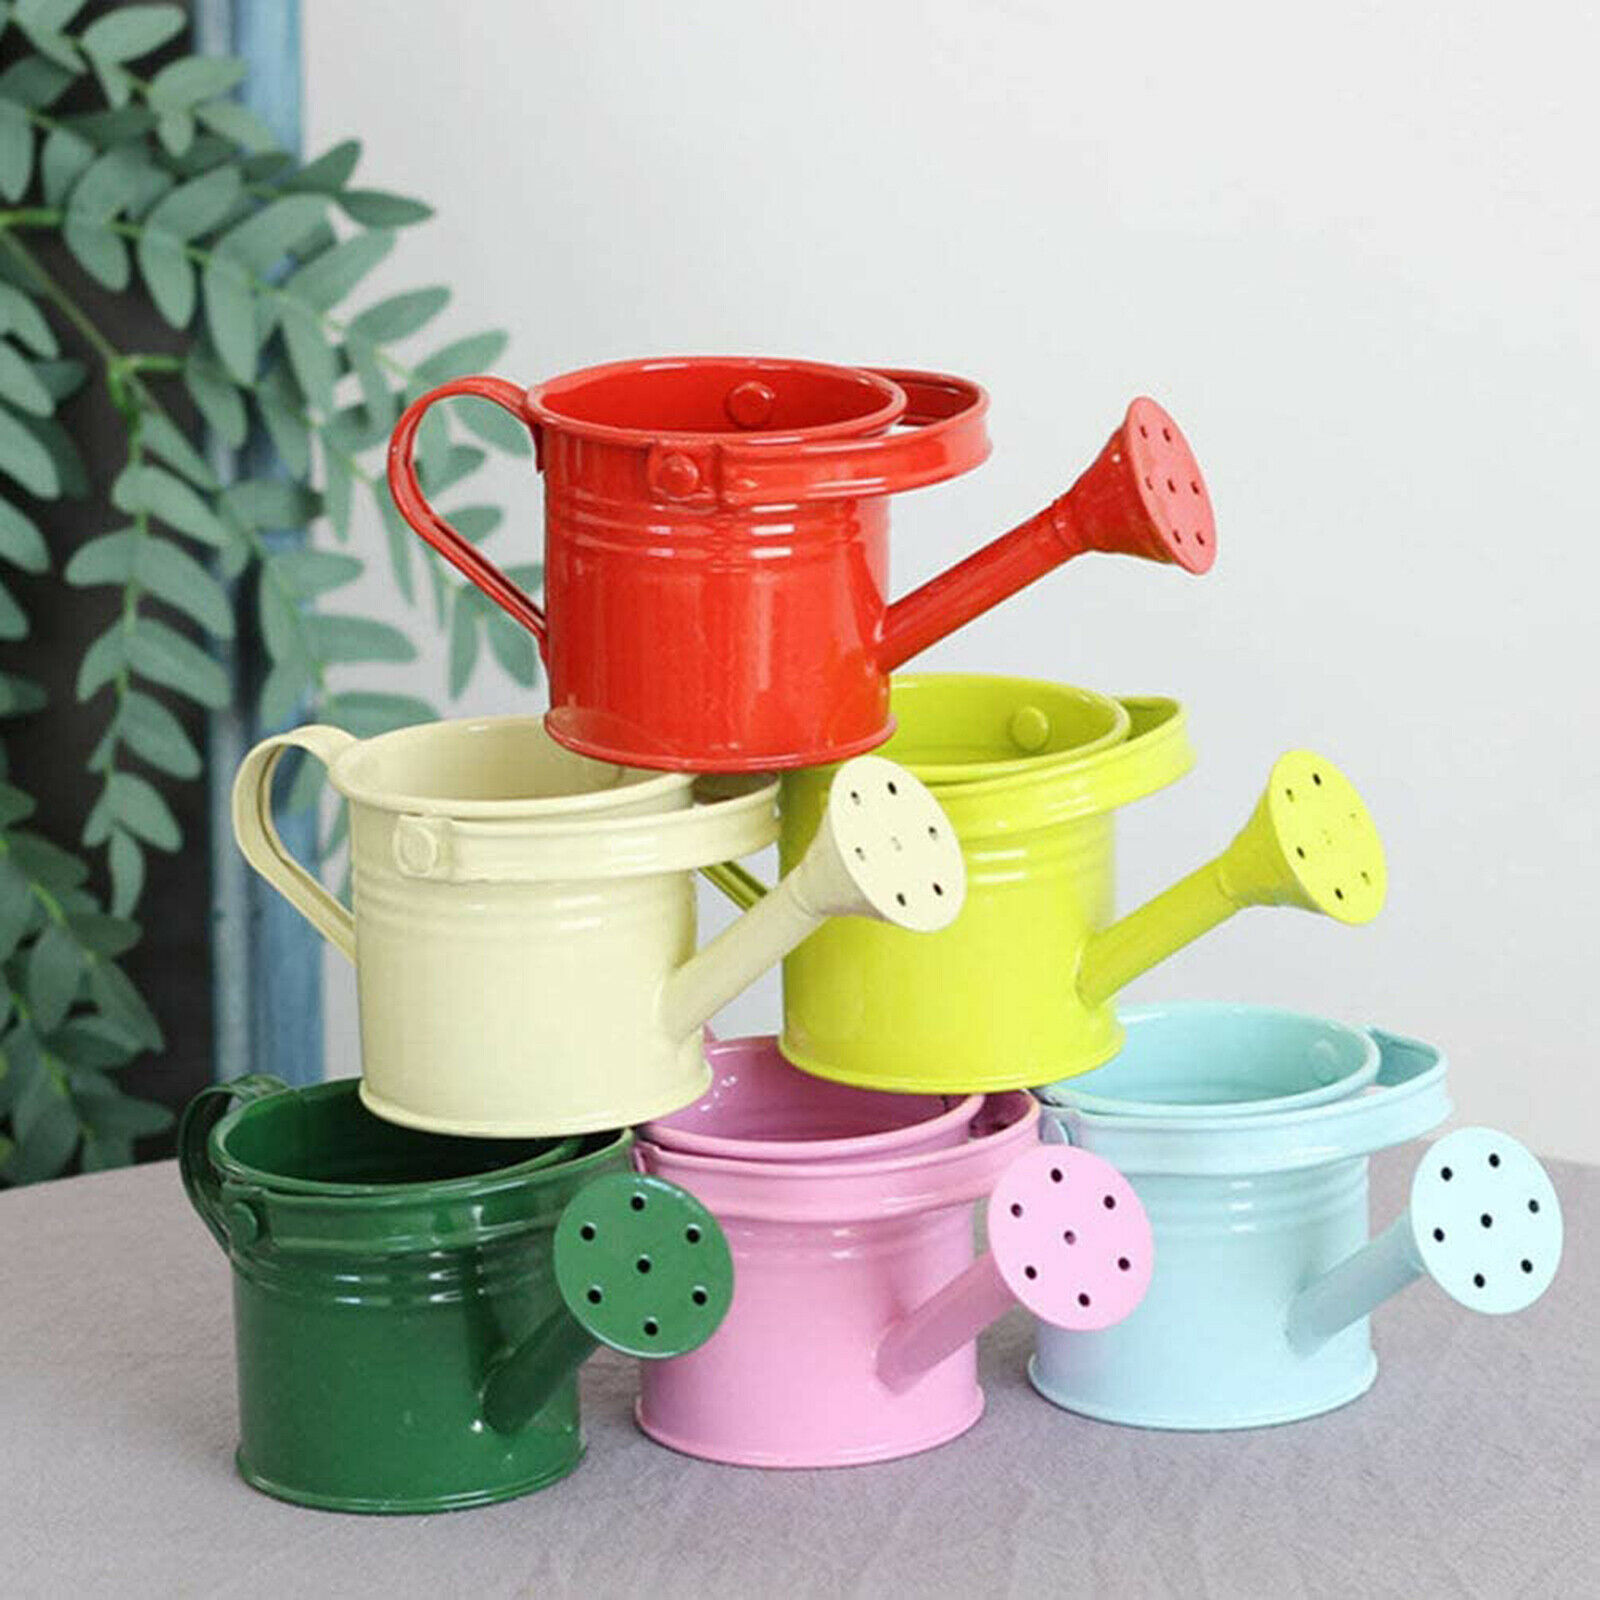 Garden Small Water Spraying Pot Flower Kettle Metal Watering Can Sprinkled Tool